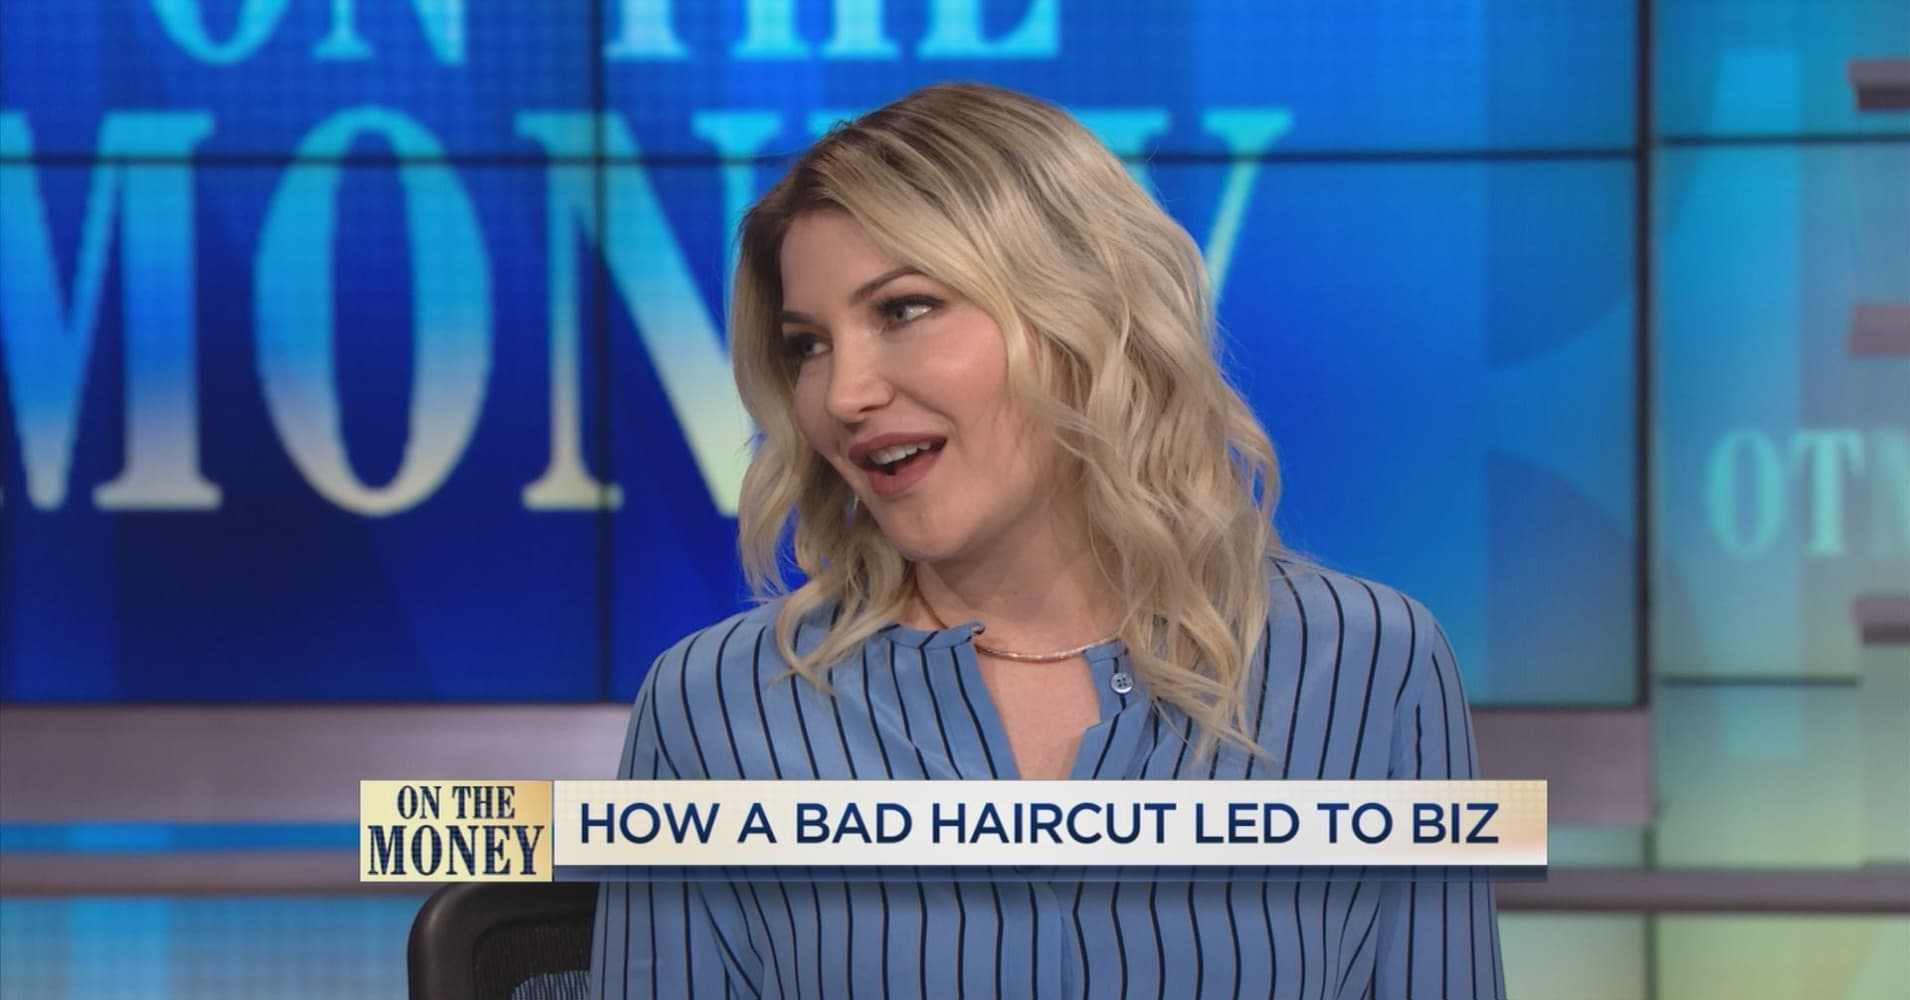 How A Bad Haircut Turned Into A Beauty Of A Startup